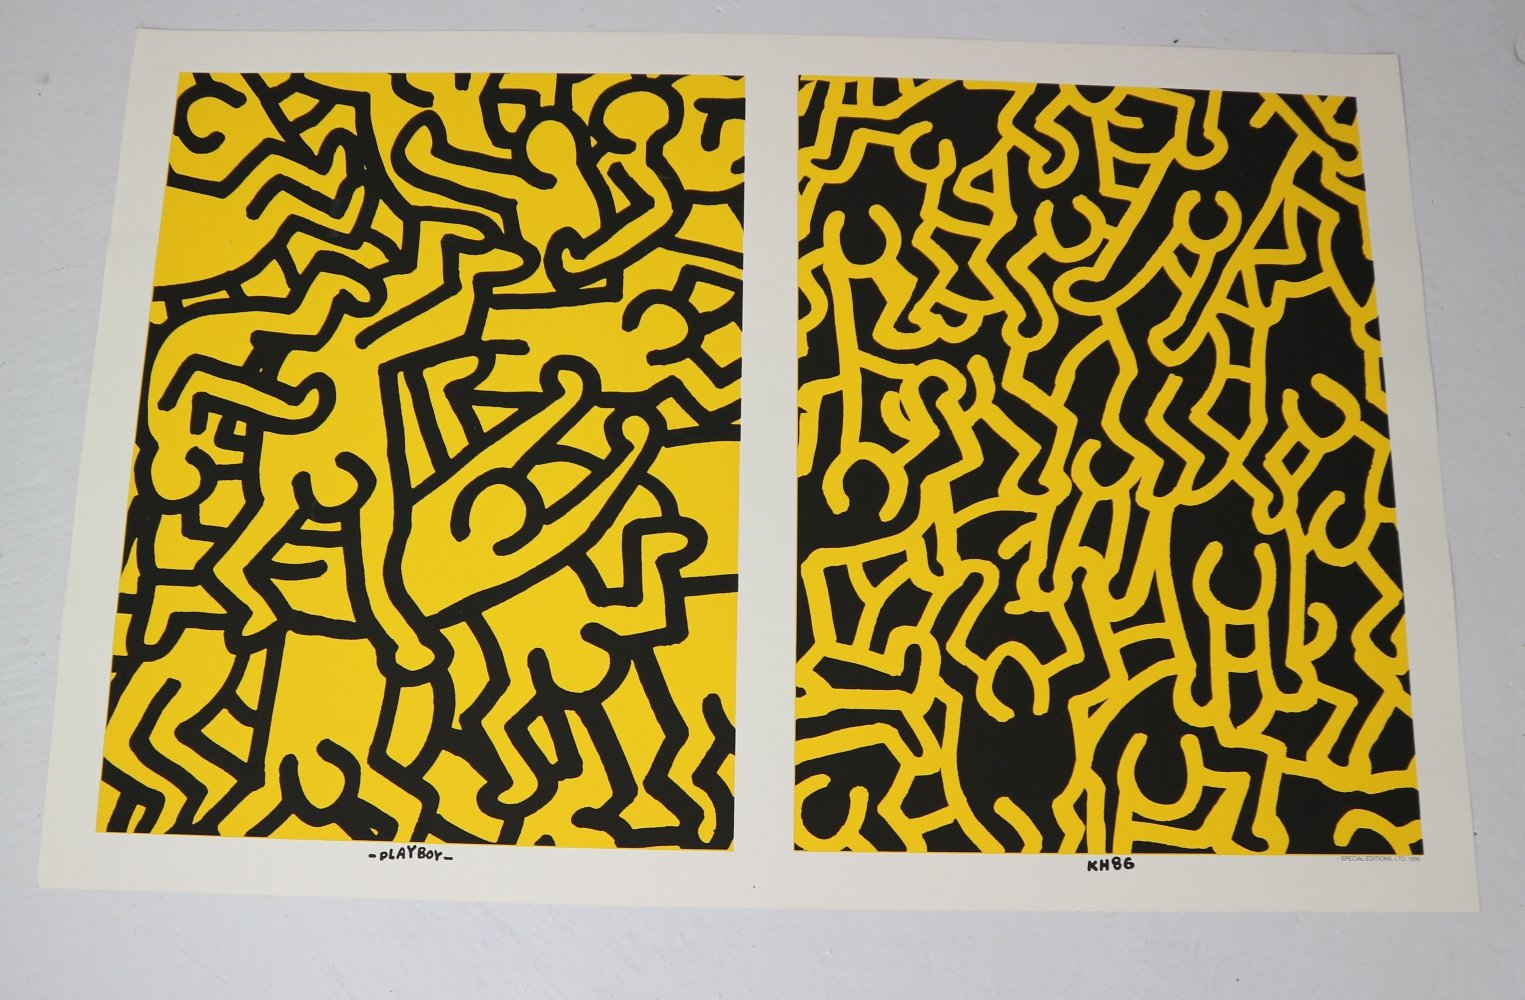 Special Edition Poster by Keith Haring